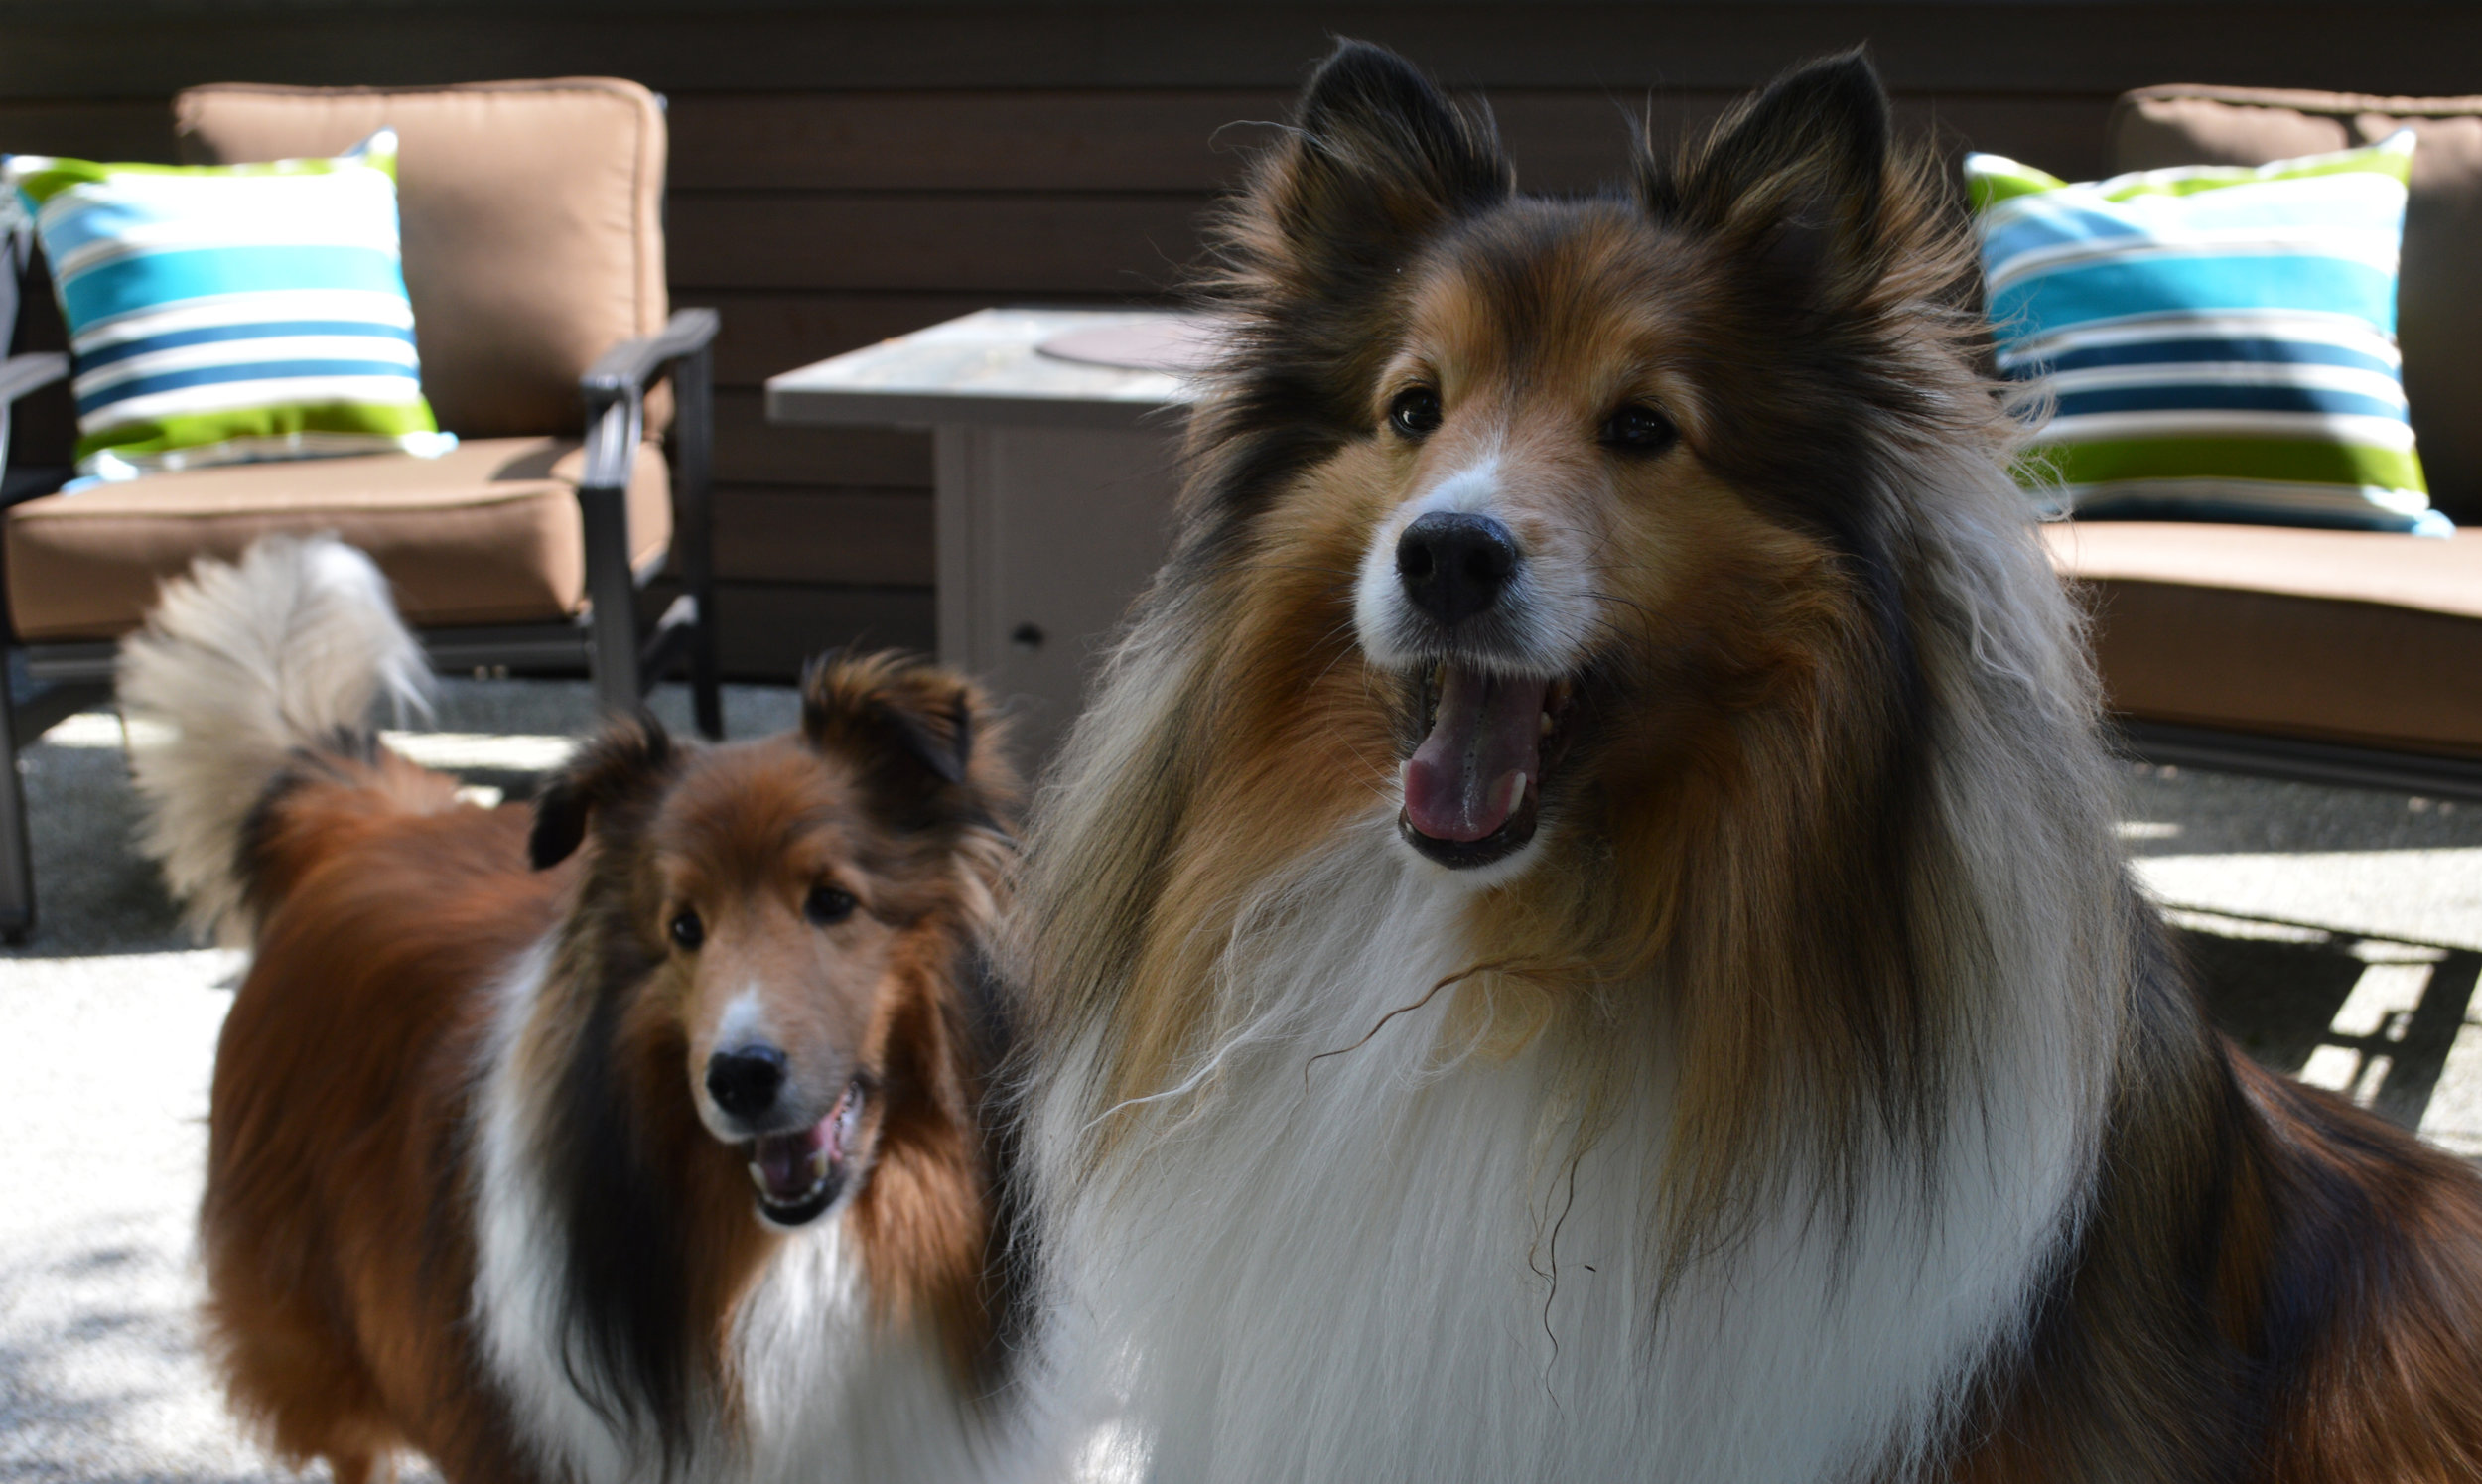 special thanks to Buddy Boo boo and Rudy toot toot . . .extra treats for being cute!